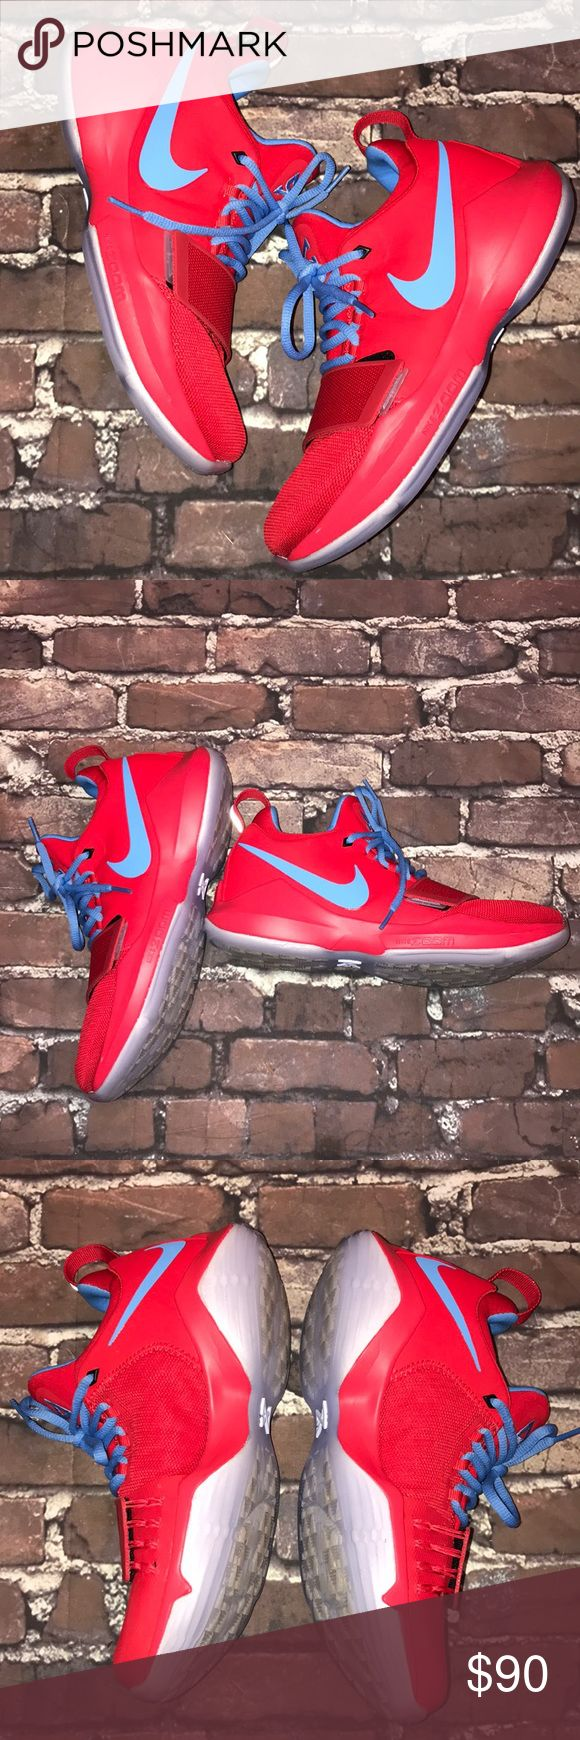 NIKE iD~ PG 1 Sneakers Paul George Shoes~7 (EUR40) Red and Carolina Blue..gently used no box. Nike Shoes Sneakers